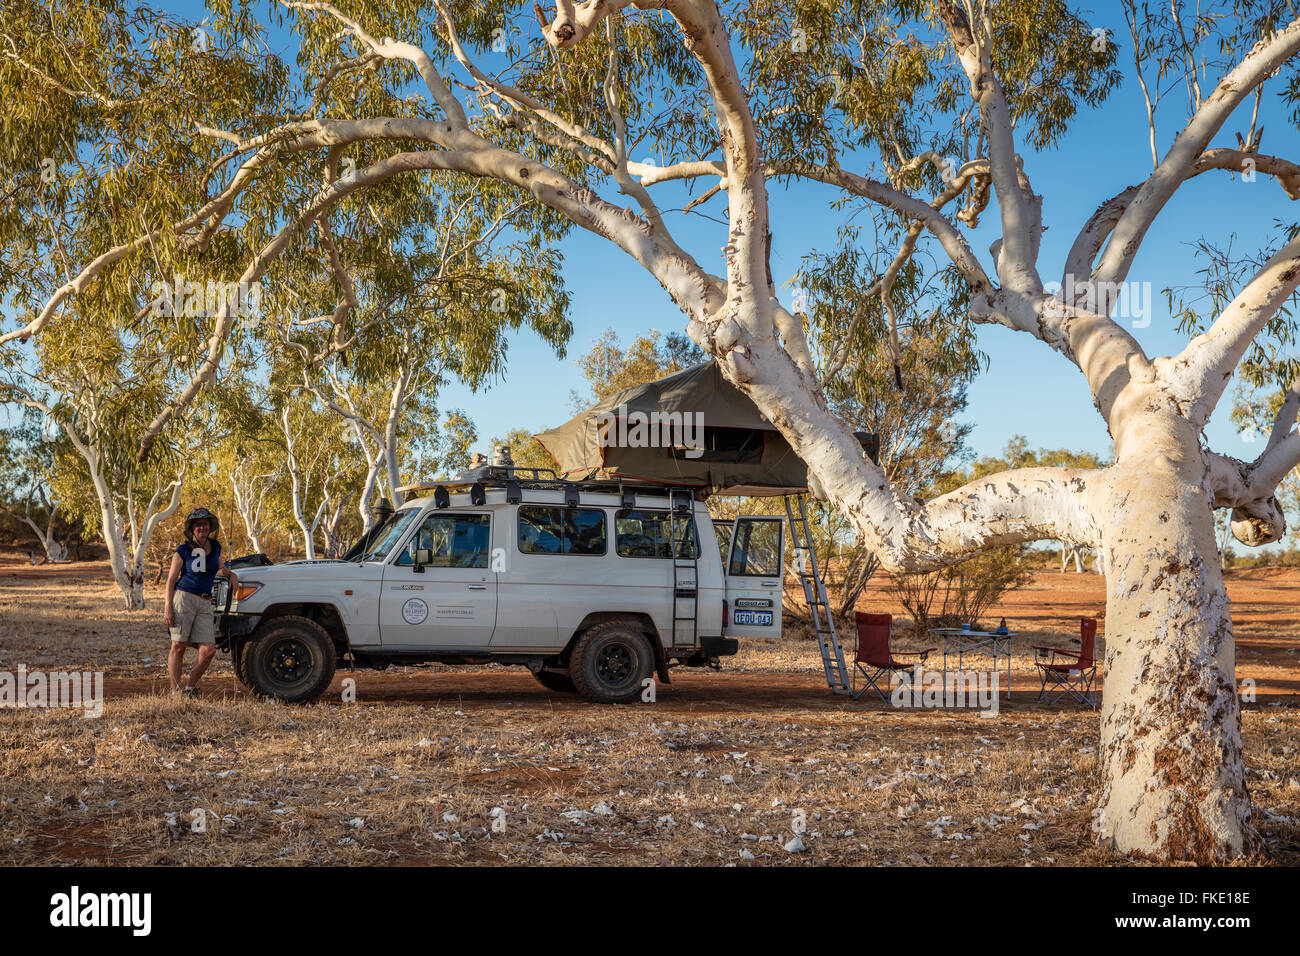 Wendy & le Troopy en camping dans l'Outback, l'Australie Occidentale Photo Stock